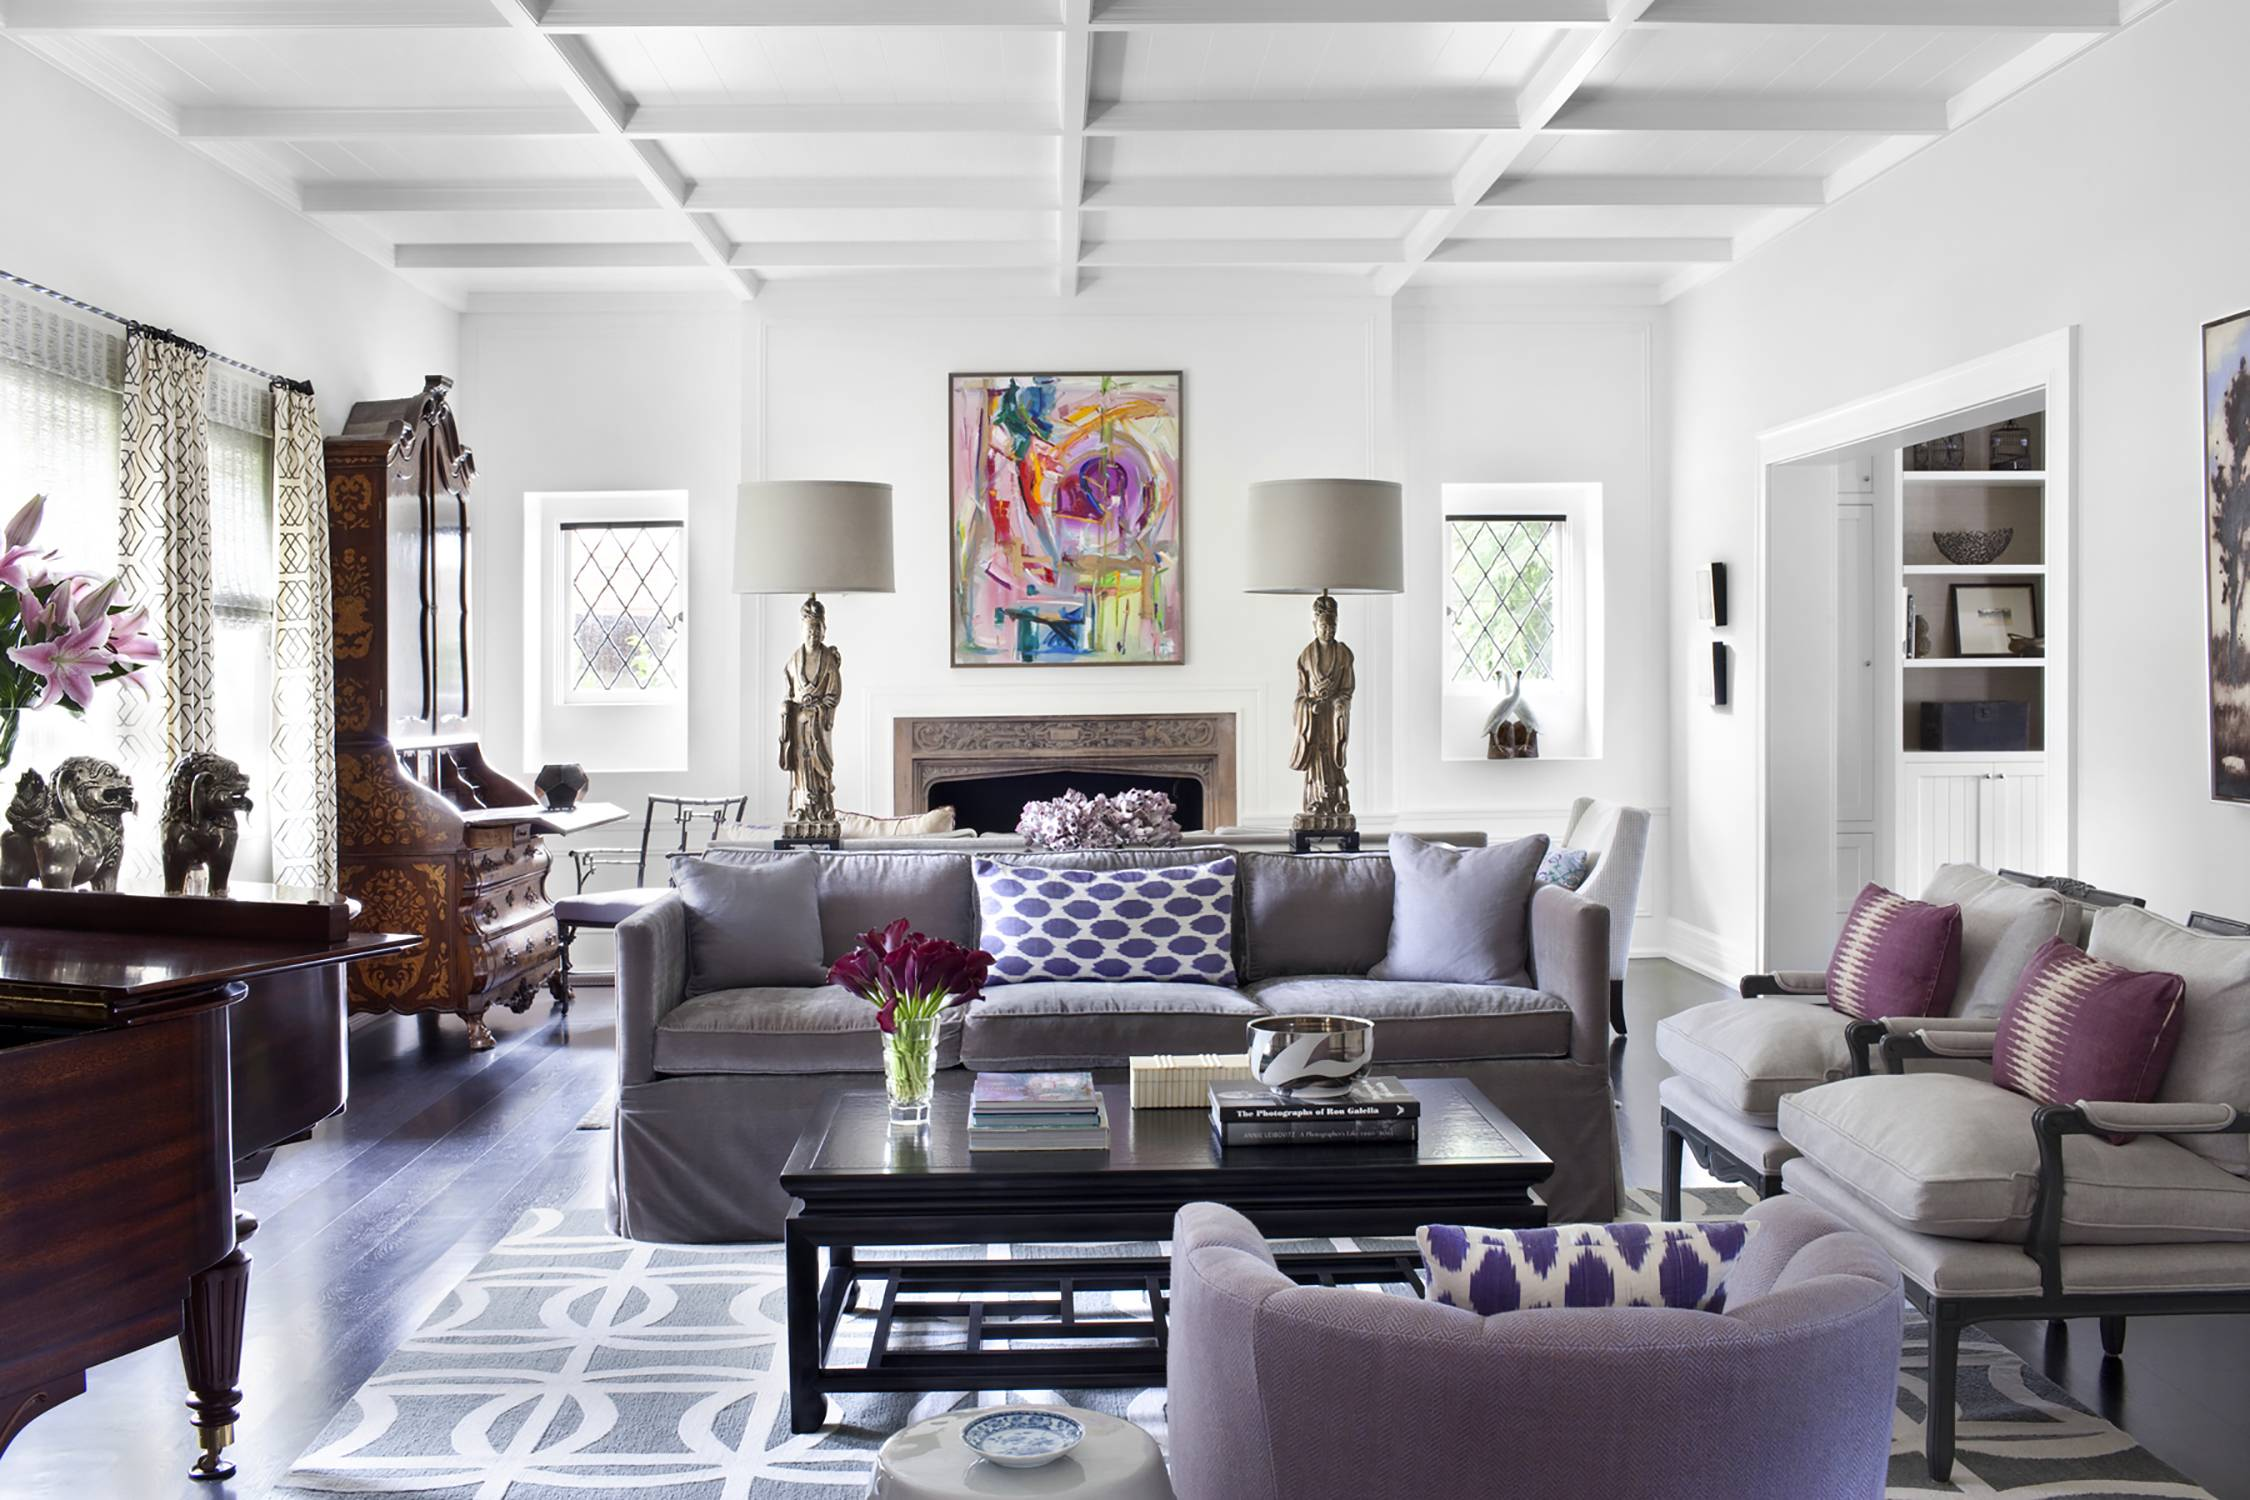 Shades of purple and lavender are mixed with softer shades of gray and black accents in a living room.